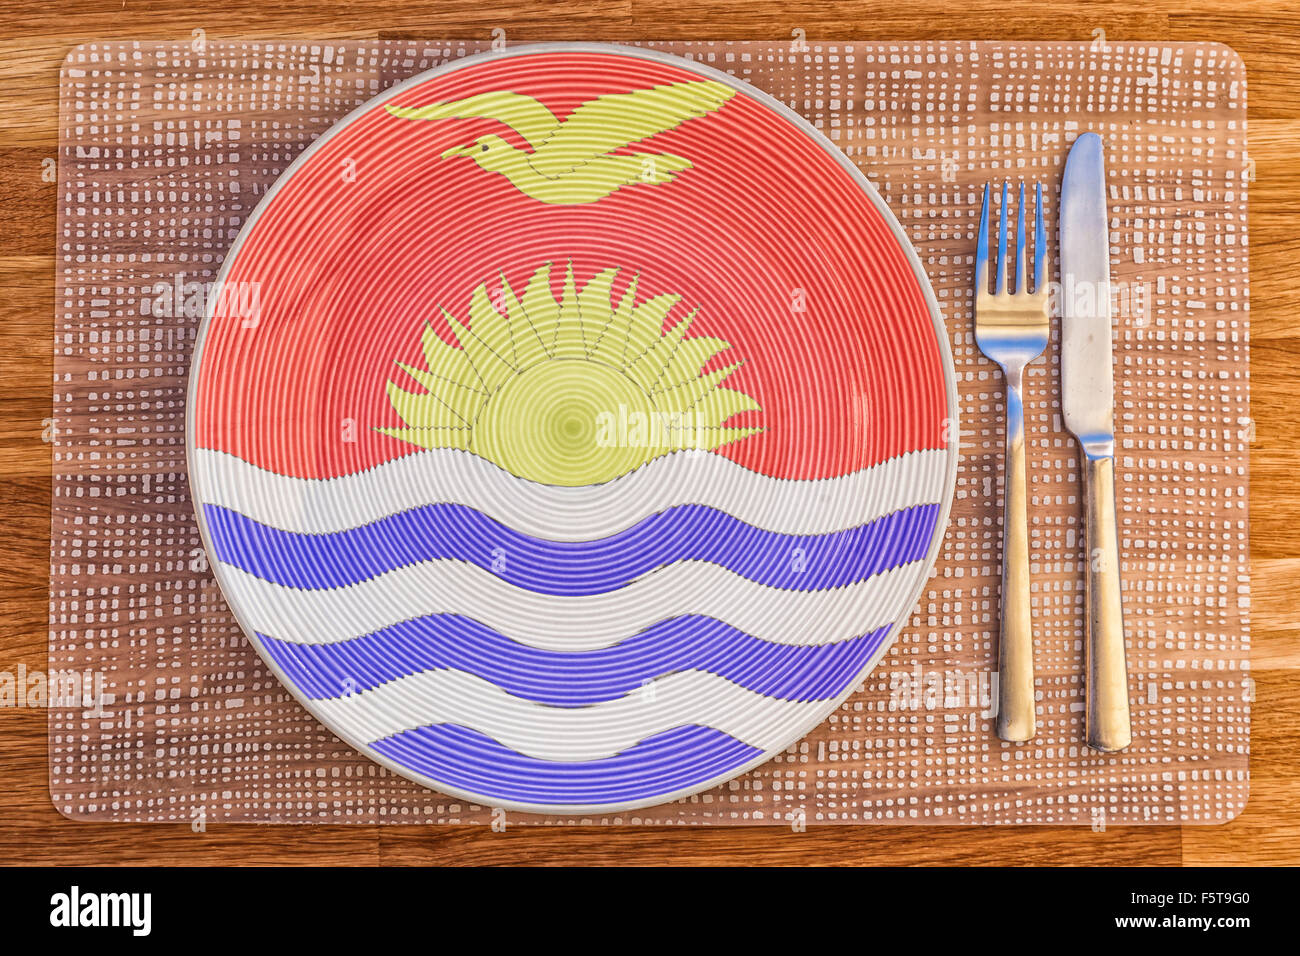 Dinner plate with the flag of Kiribati on it for your international food and drink concepts. - Stock Image